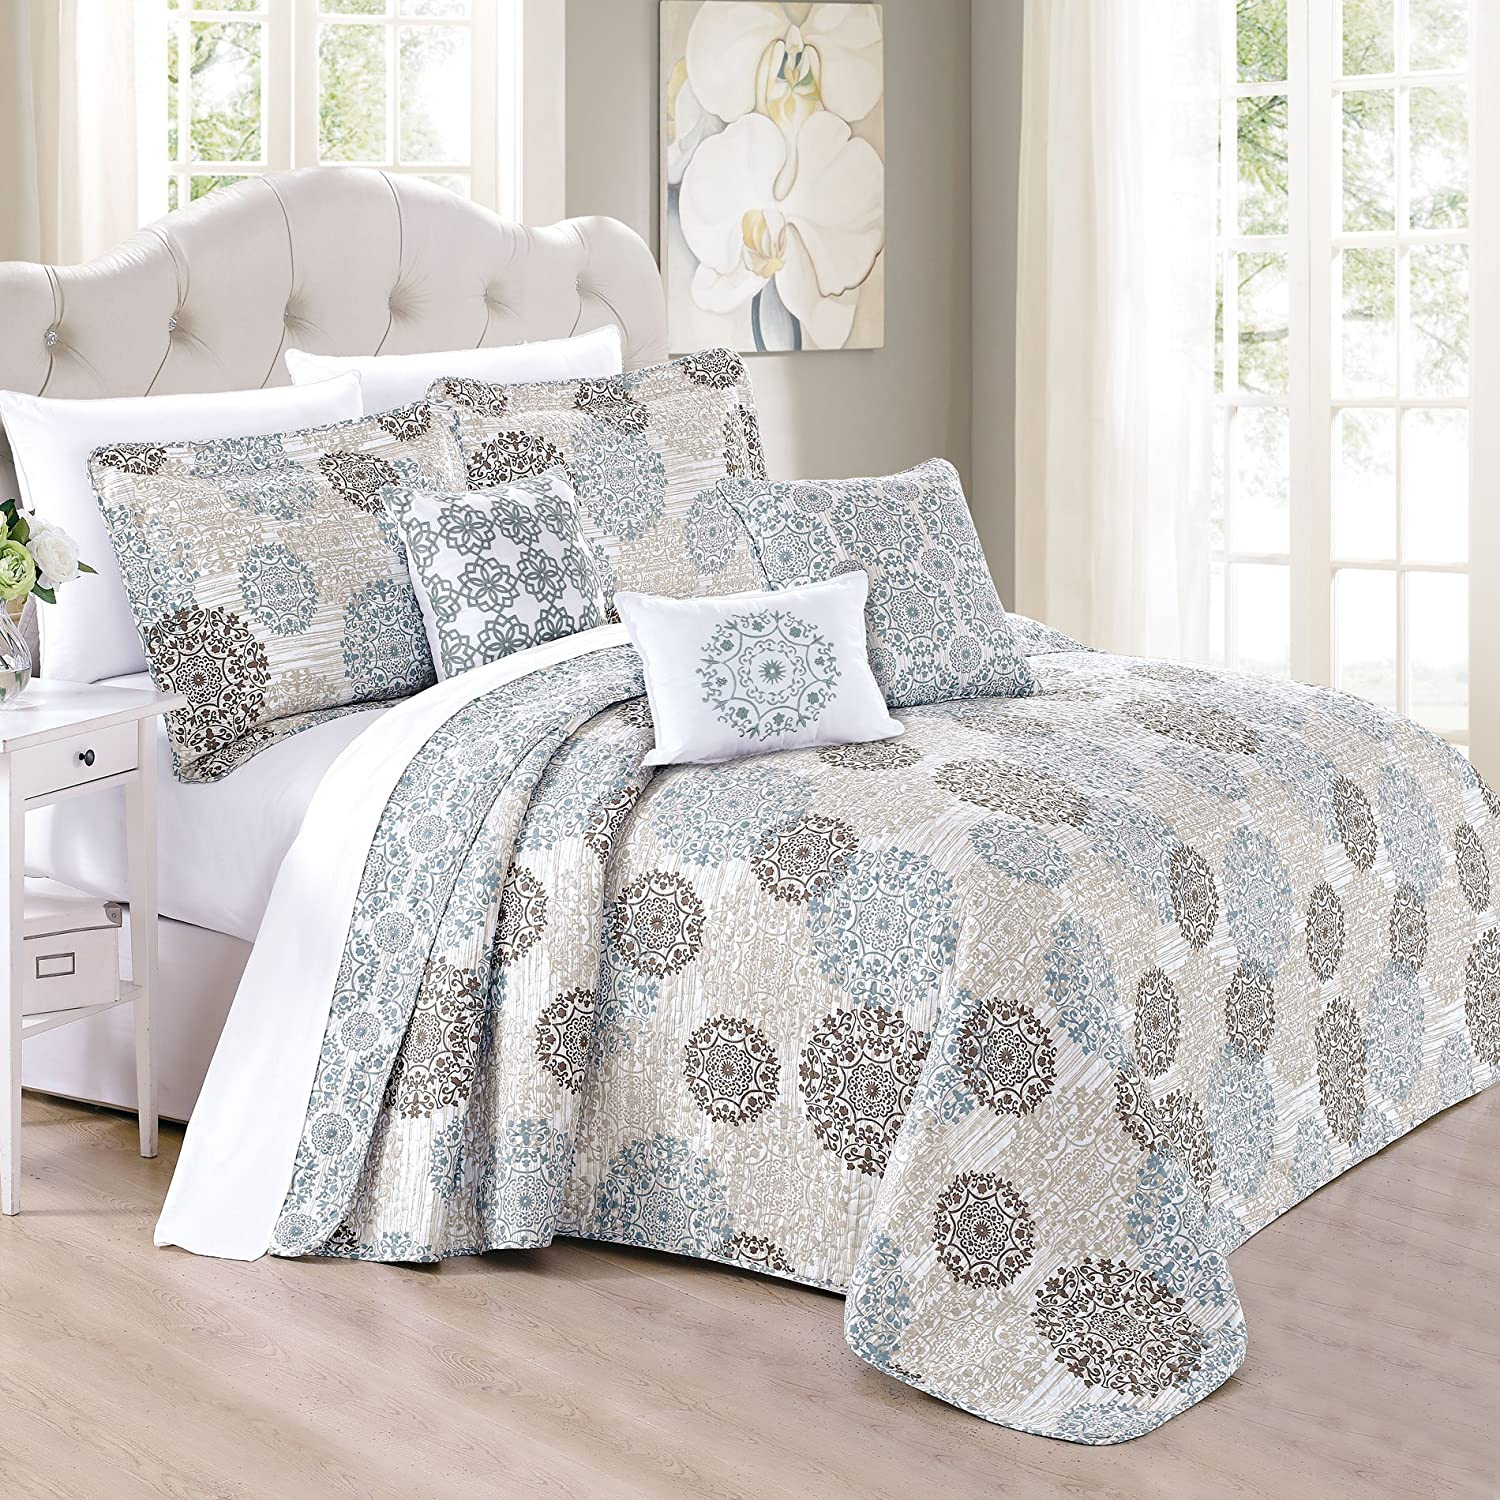 Home Soft Things Marina MDLN Bedspread, Queen, Khaki/Blue/Brown